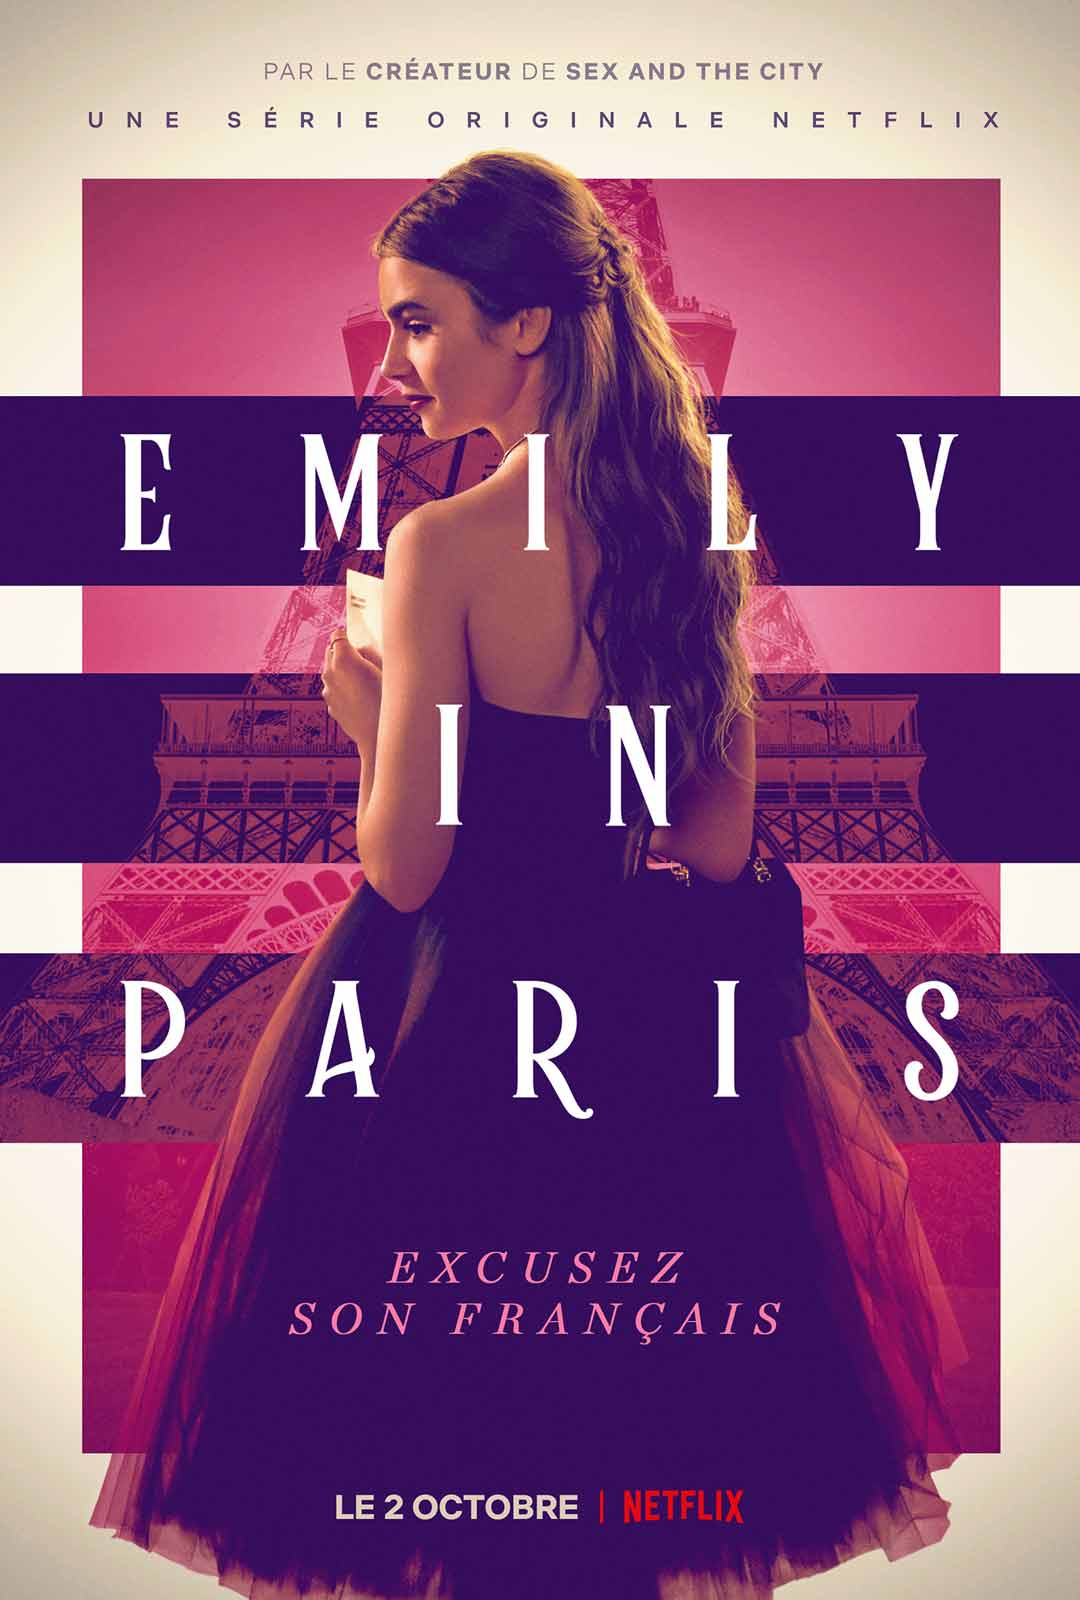 émily in Paris avis; critiques Émily in Paris; romance, Netflix; Lily Collins